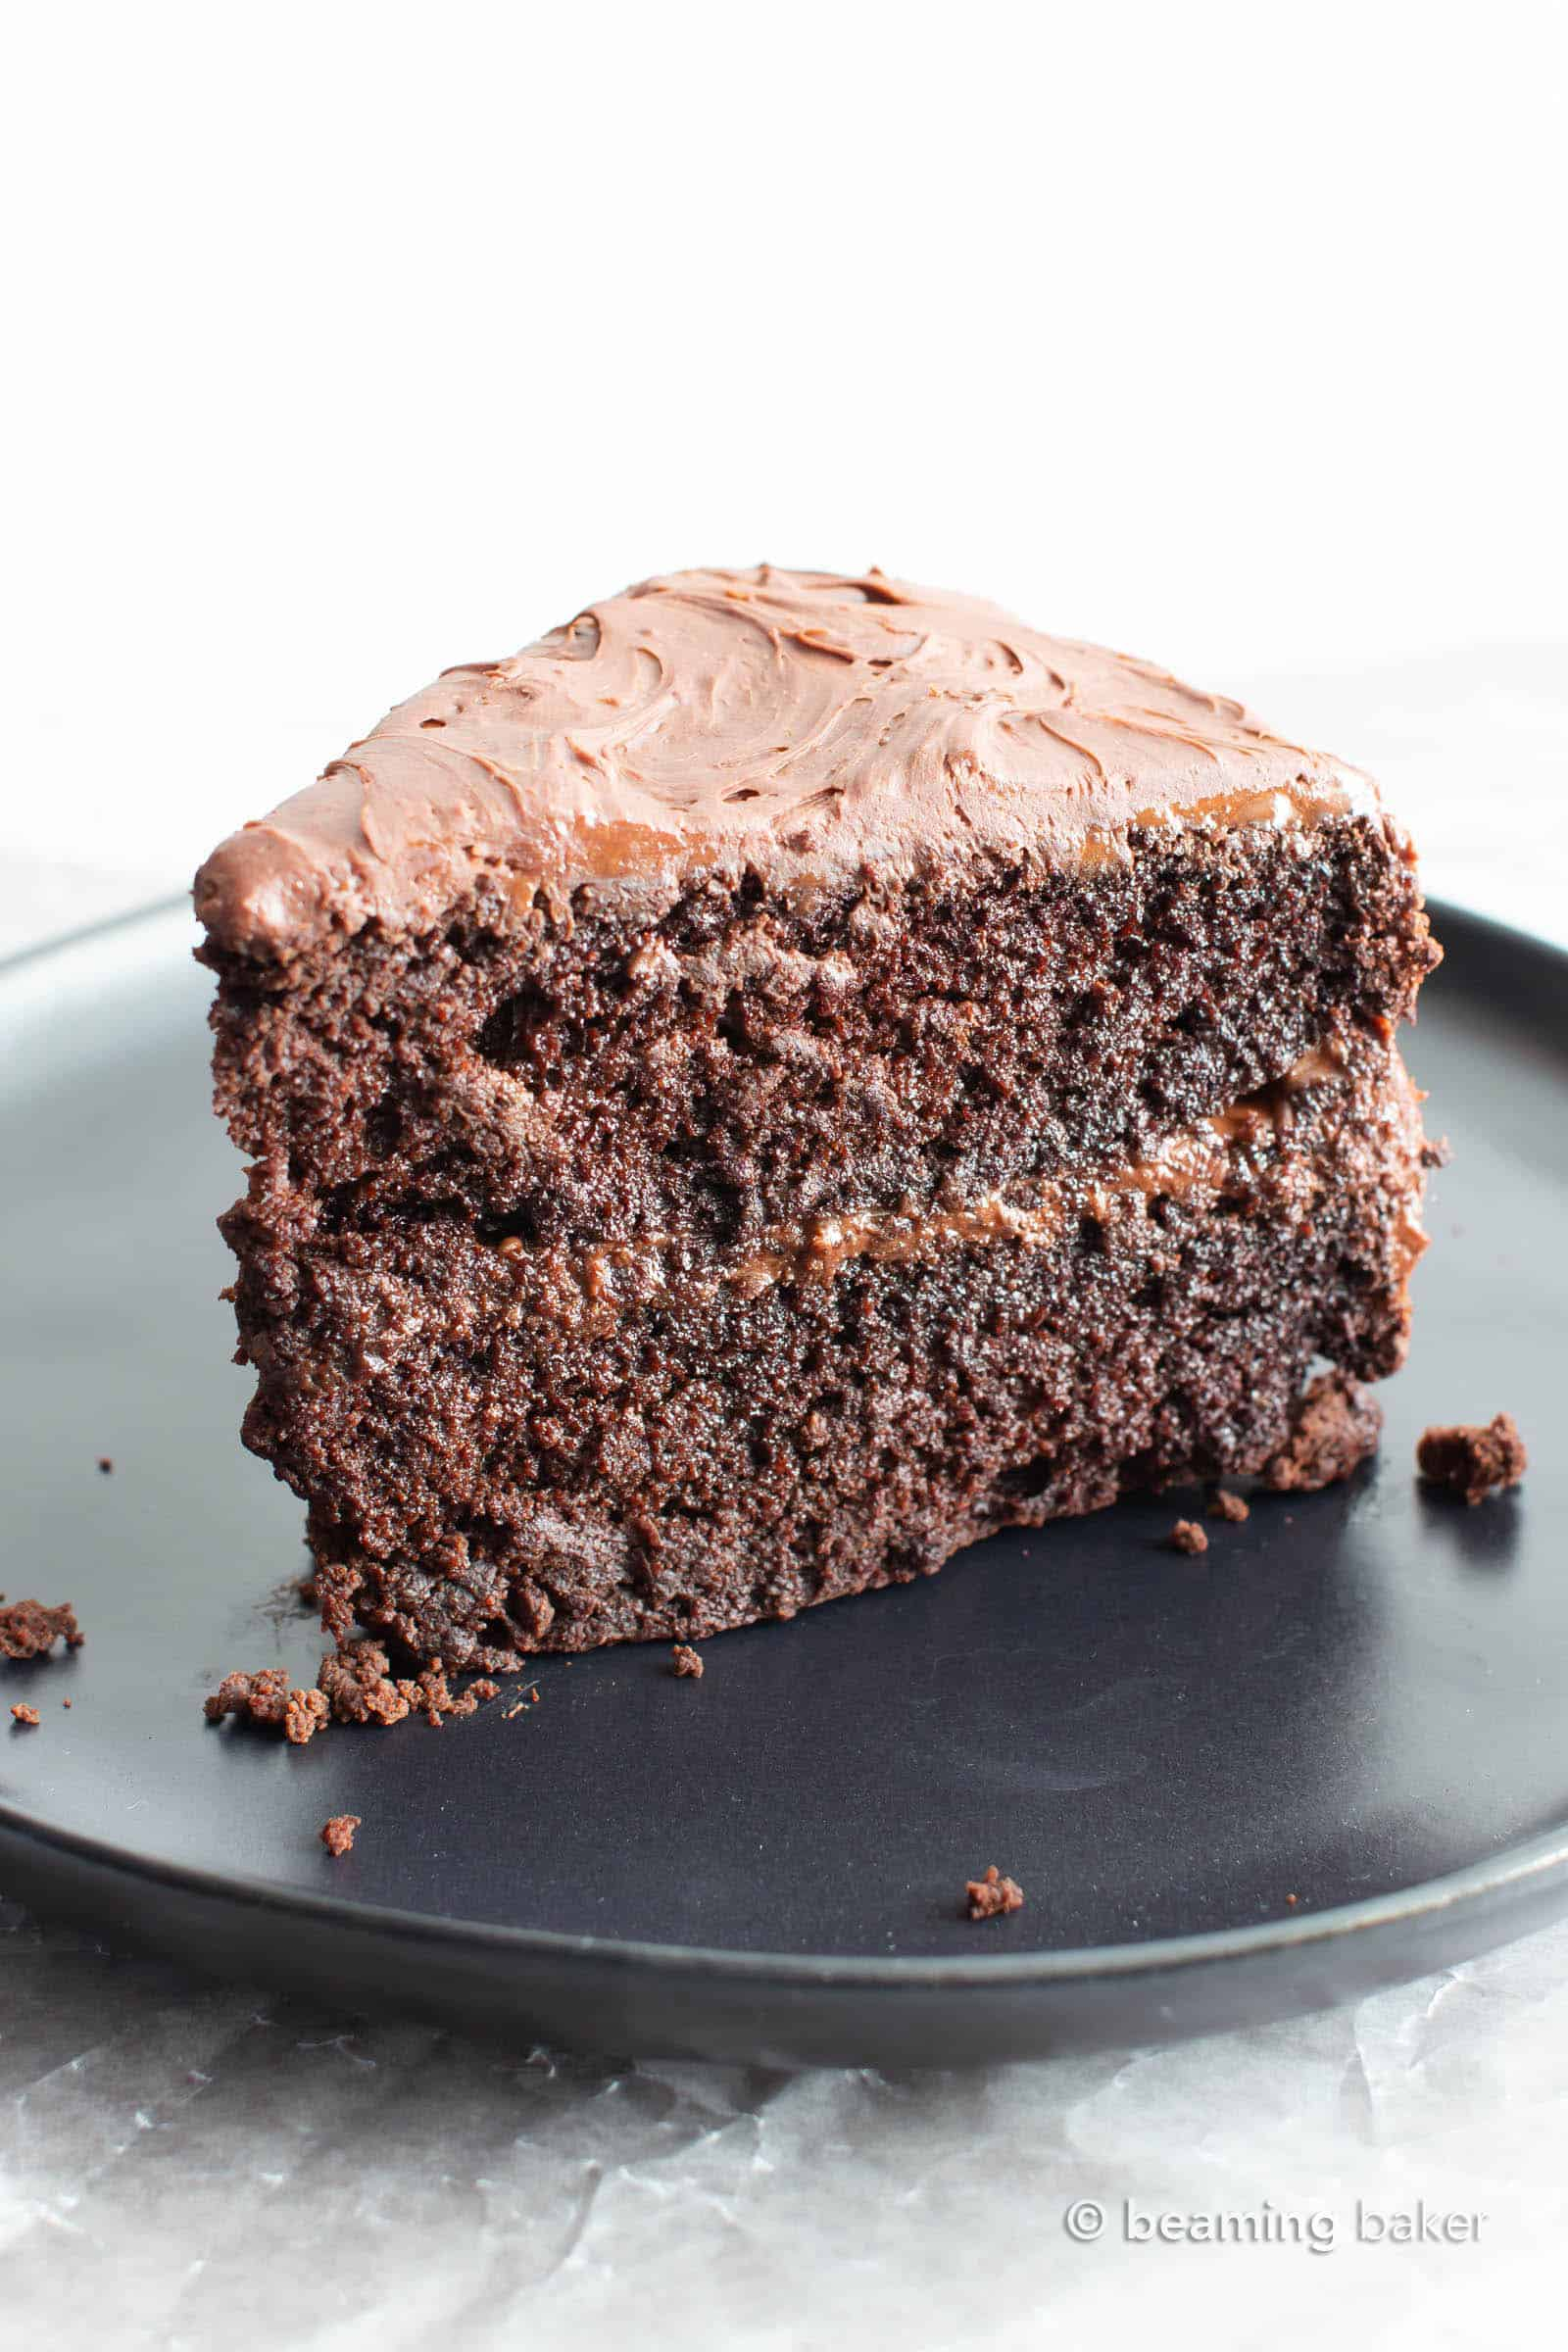 Vegan Gluten Free Chocolate Cake Recipe: this gluten free dairy free cake yields moist & rich chocolate cake covered in irresistible creamy chocolate frosting! My favorite vegan gluten free cake recipe! #GlutenFree #Vegan #Cake #Chocolate #DairyFree | Recipe at BeamingBaker.com